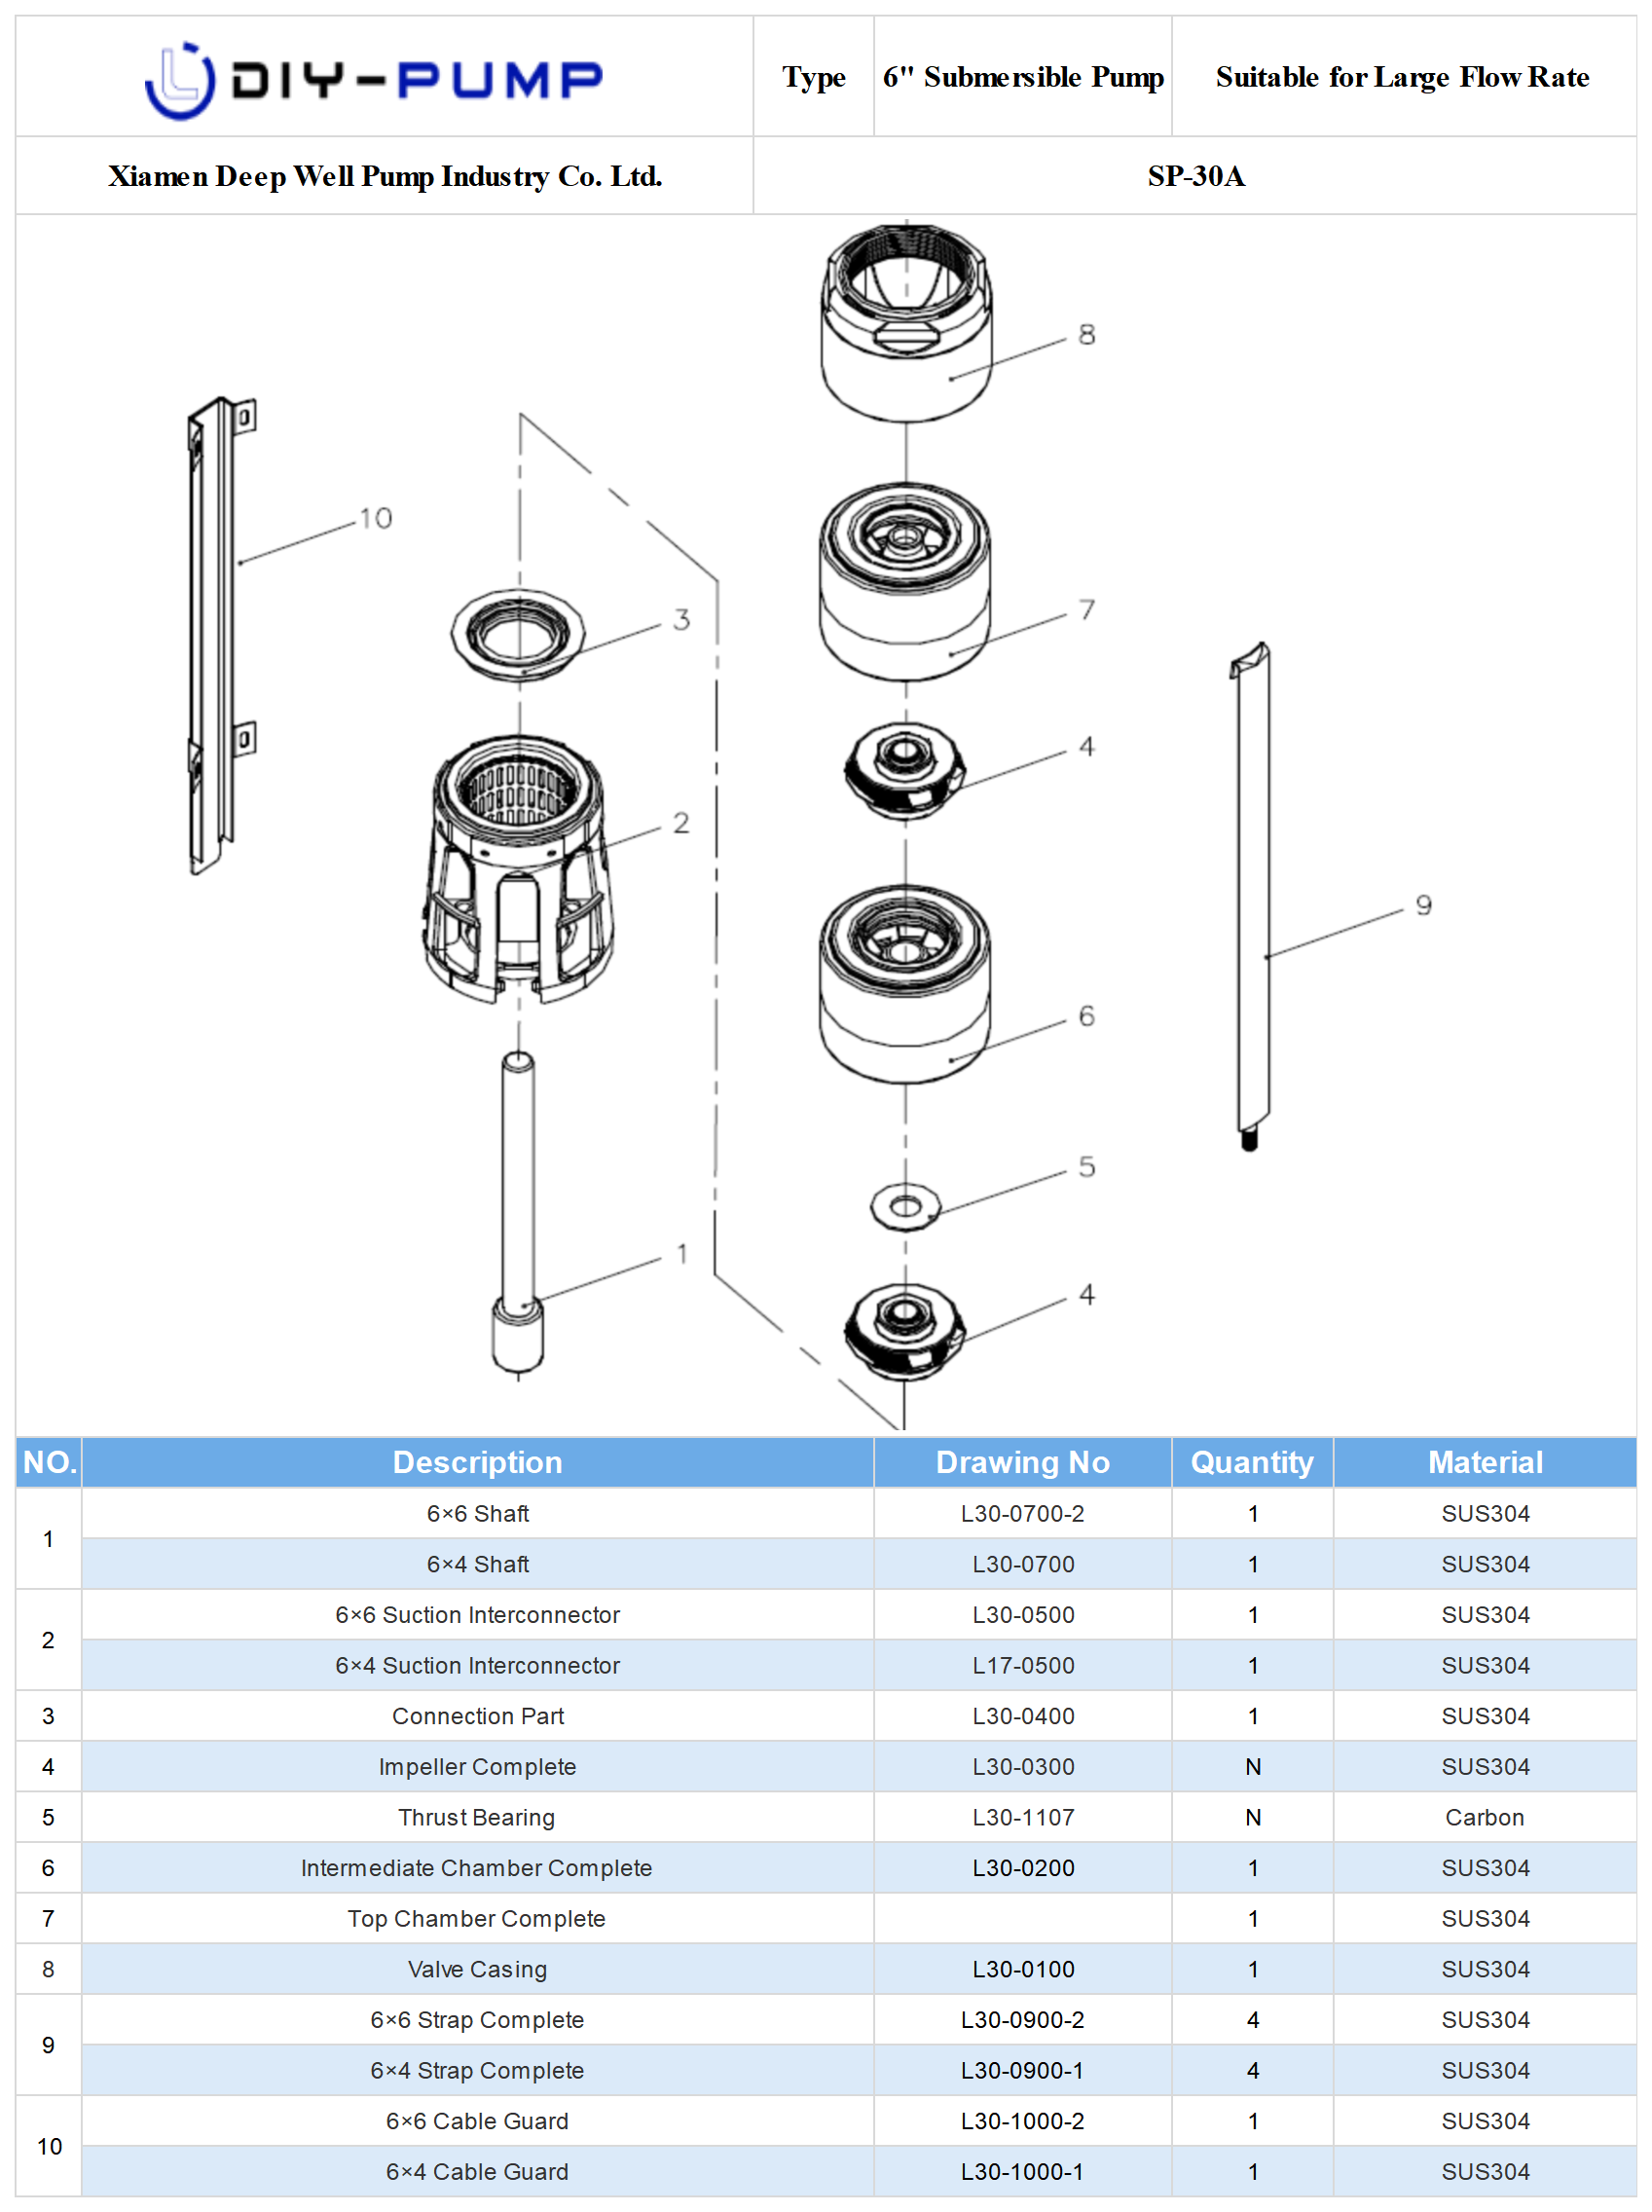 SP-30 Deep Well Submersible Pump Structure.png